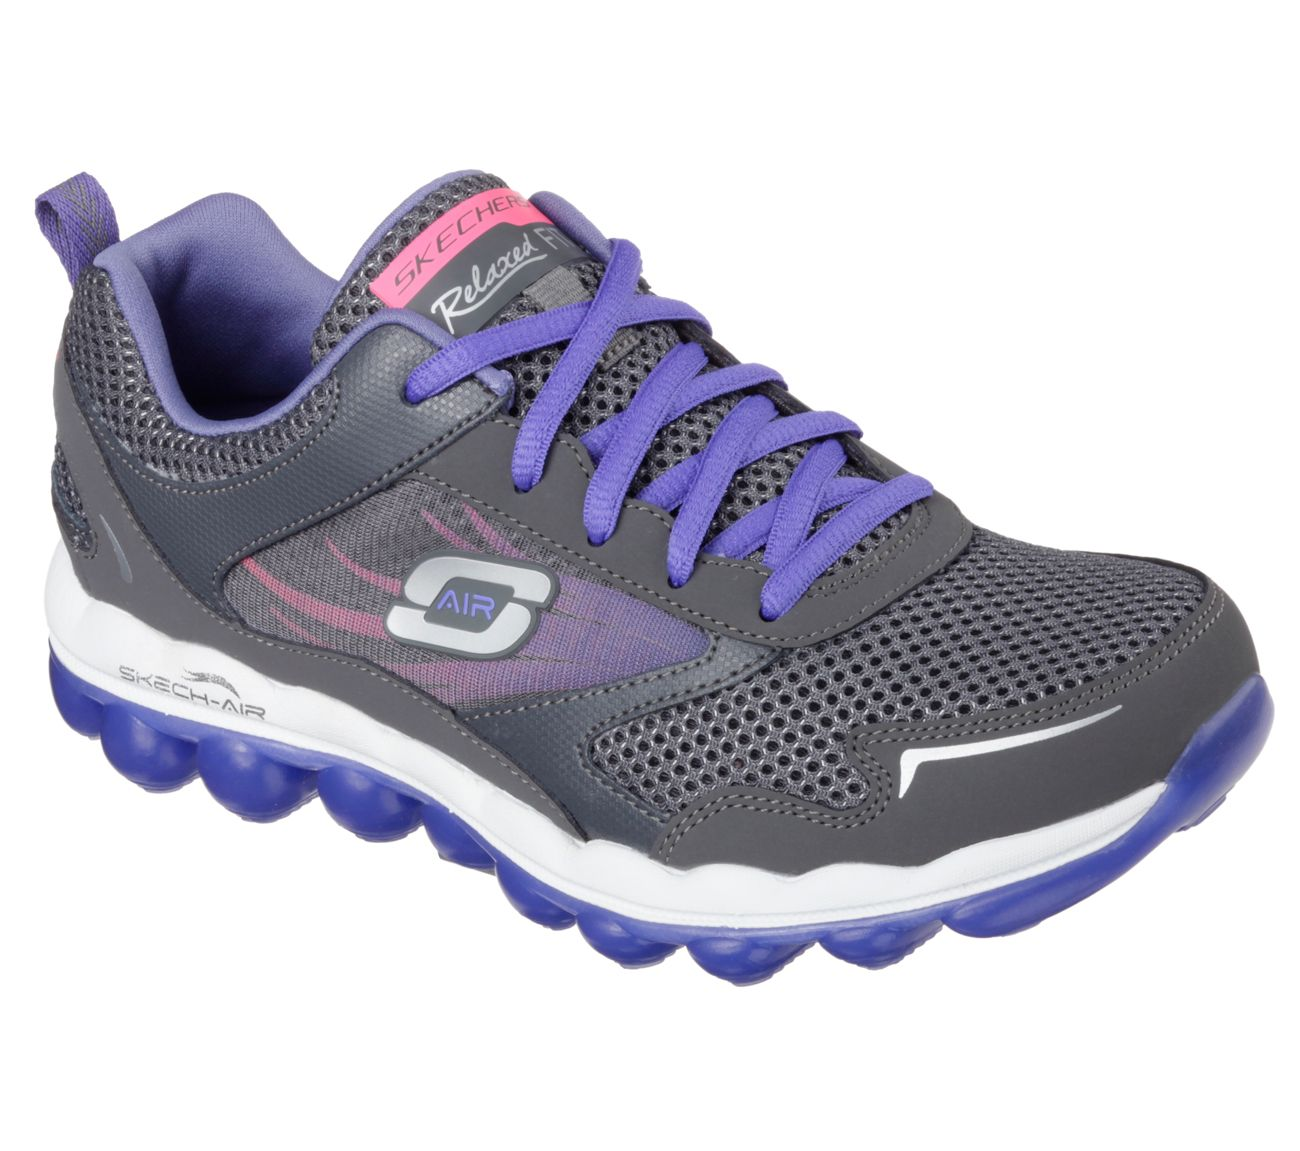 Athletic Style Gets Even Better In The Skechers Relaxed Fit Reg